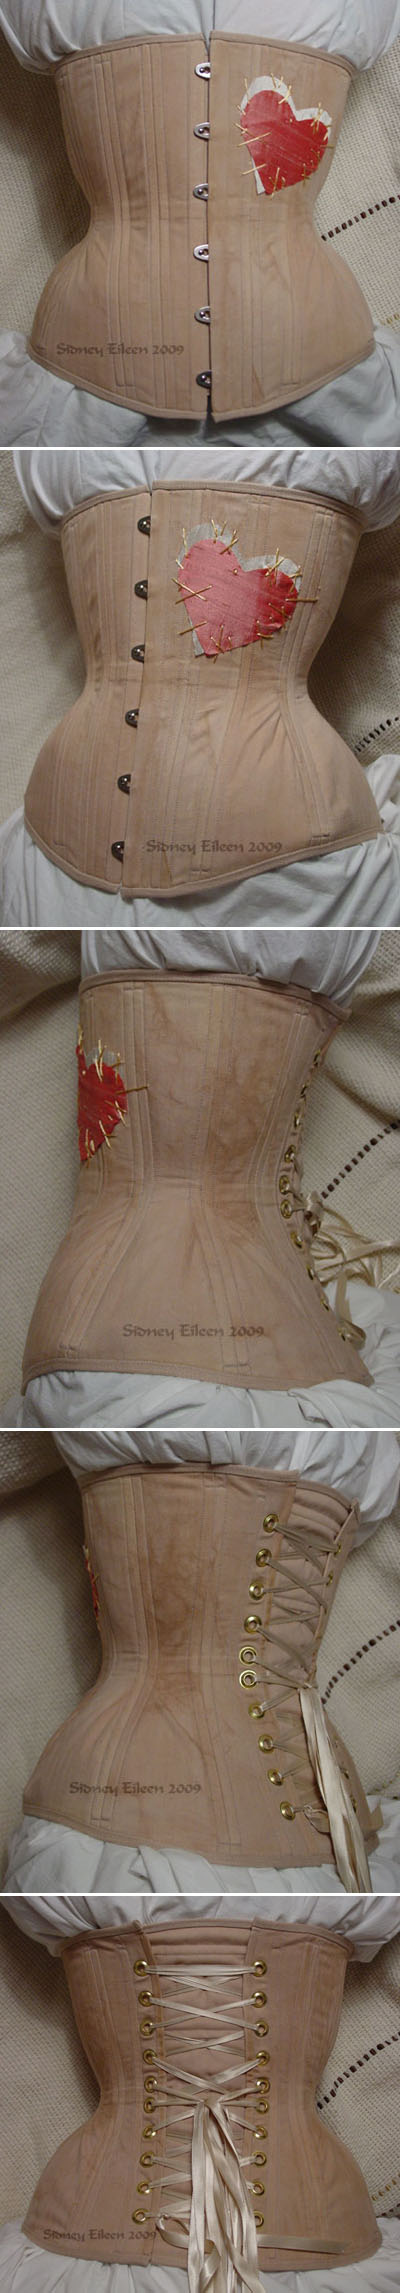 """Rag Doll"" Underbust - All Views, by Sidney Eileen"